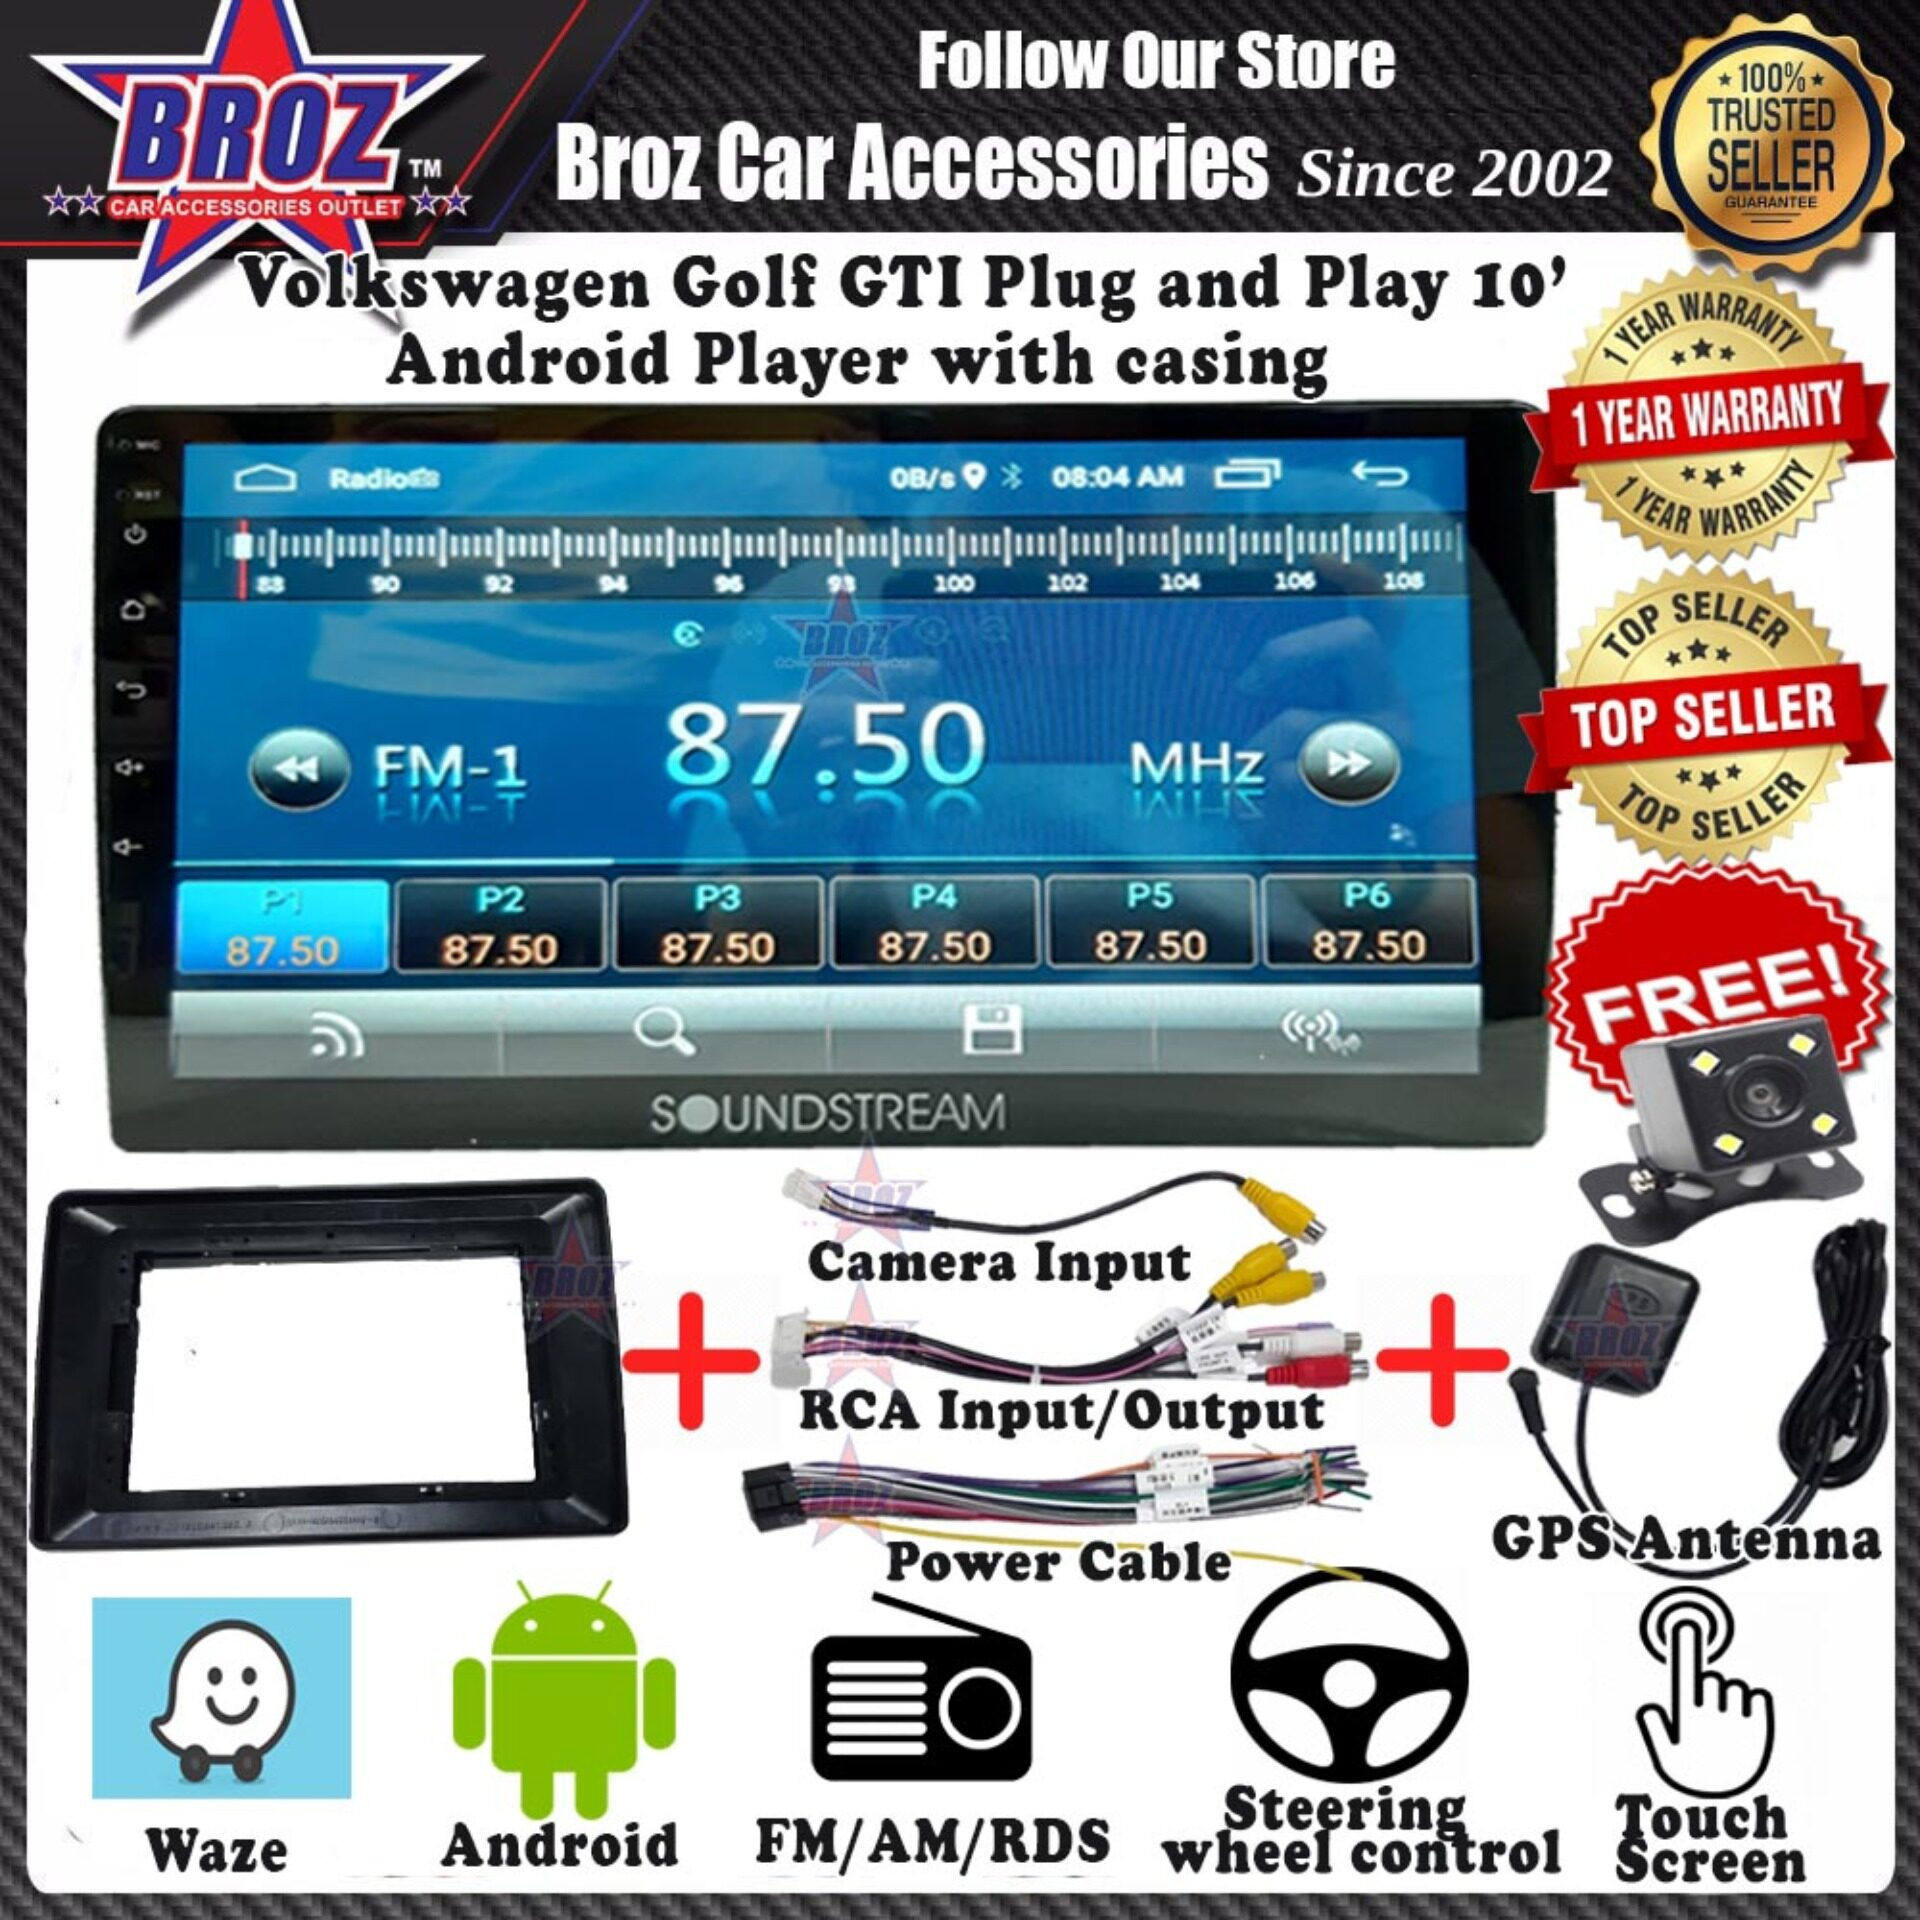 Volkswagen Golf GTI 10  Android Player 1GB + 16G 8.1 Universal Car Multimedia Head Unit Radio built in GPS Bluetooth WIFI USB AUX Touch Screen + Camera